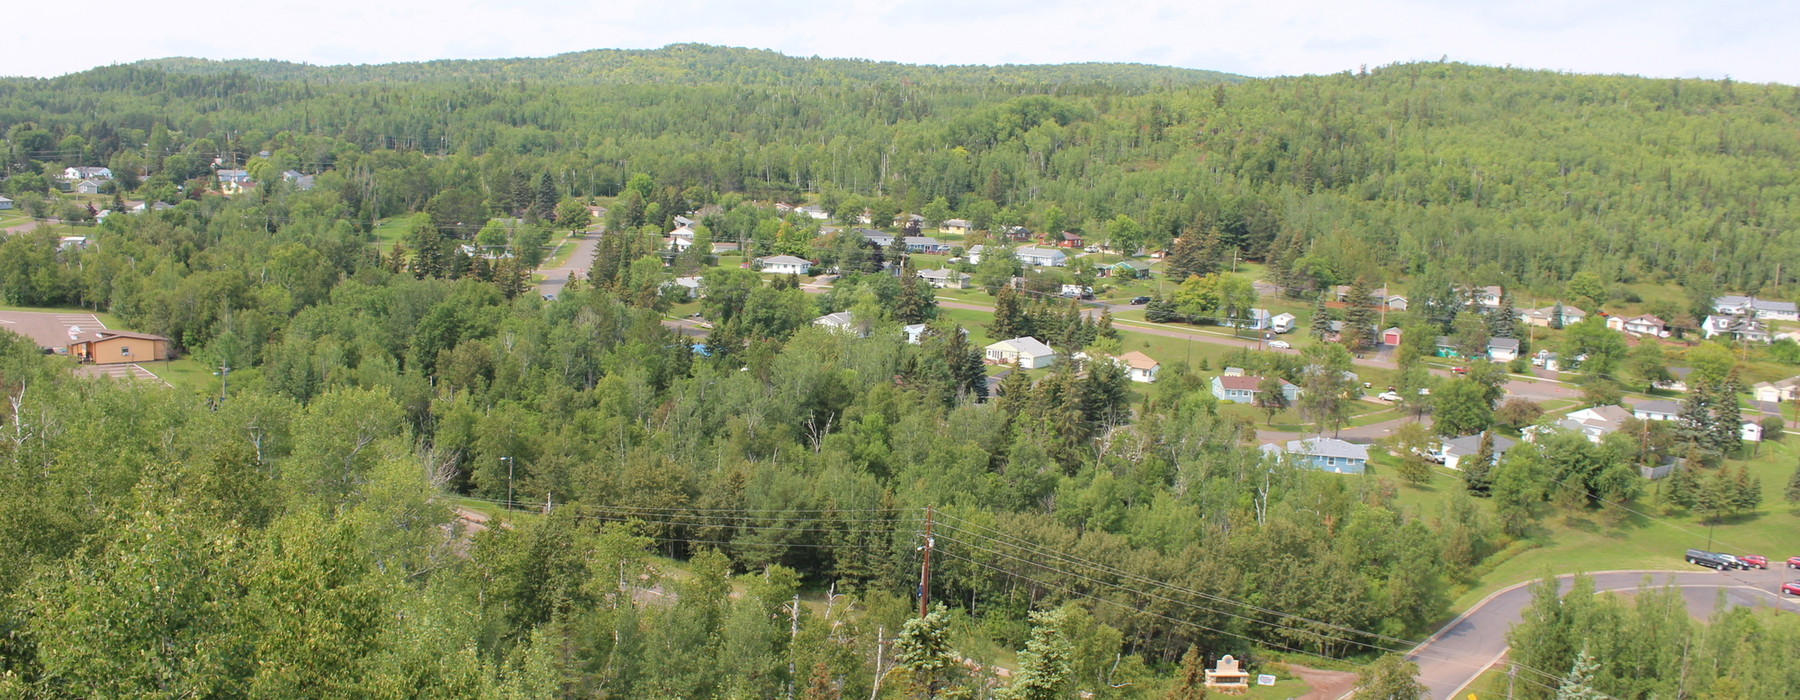 Rural community from nearby hill